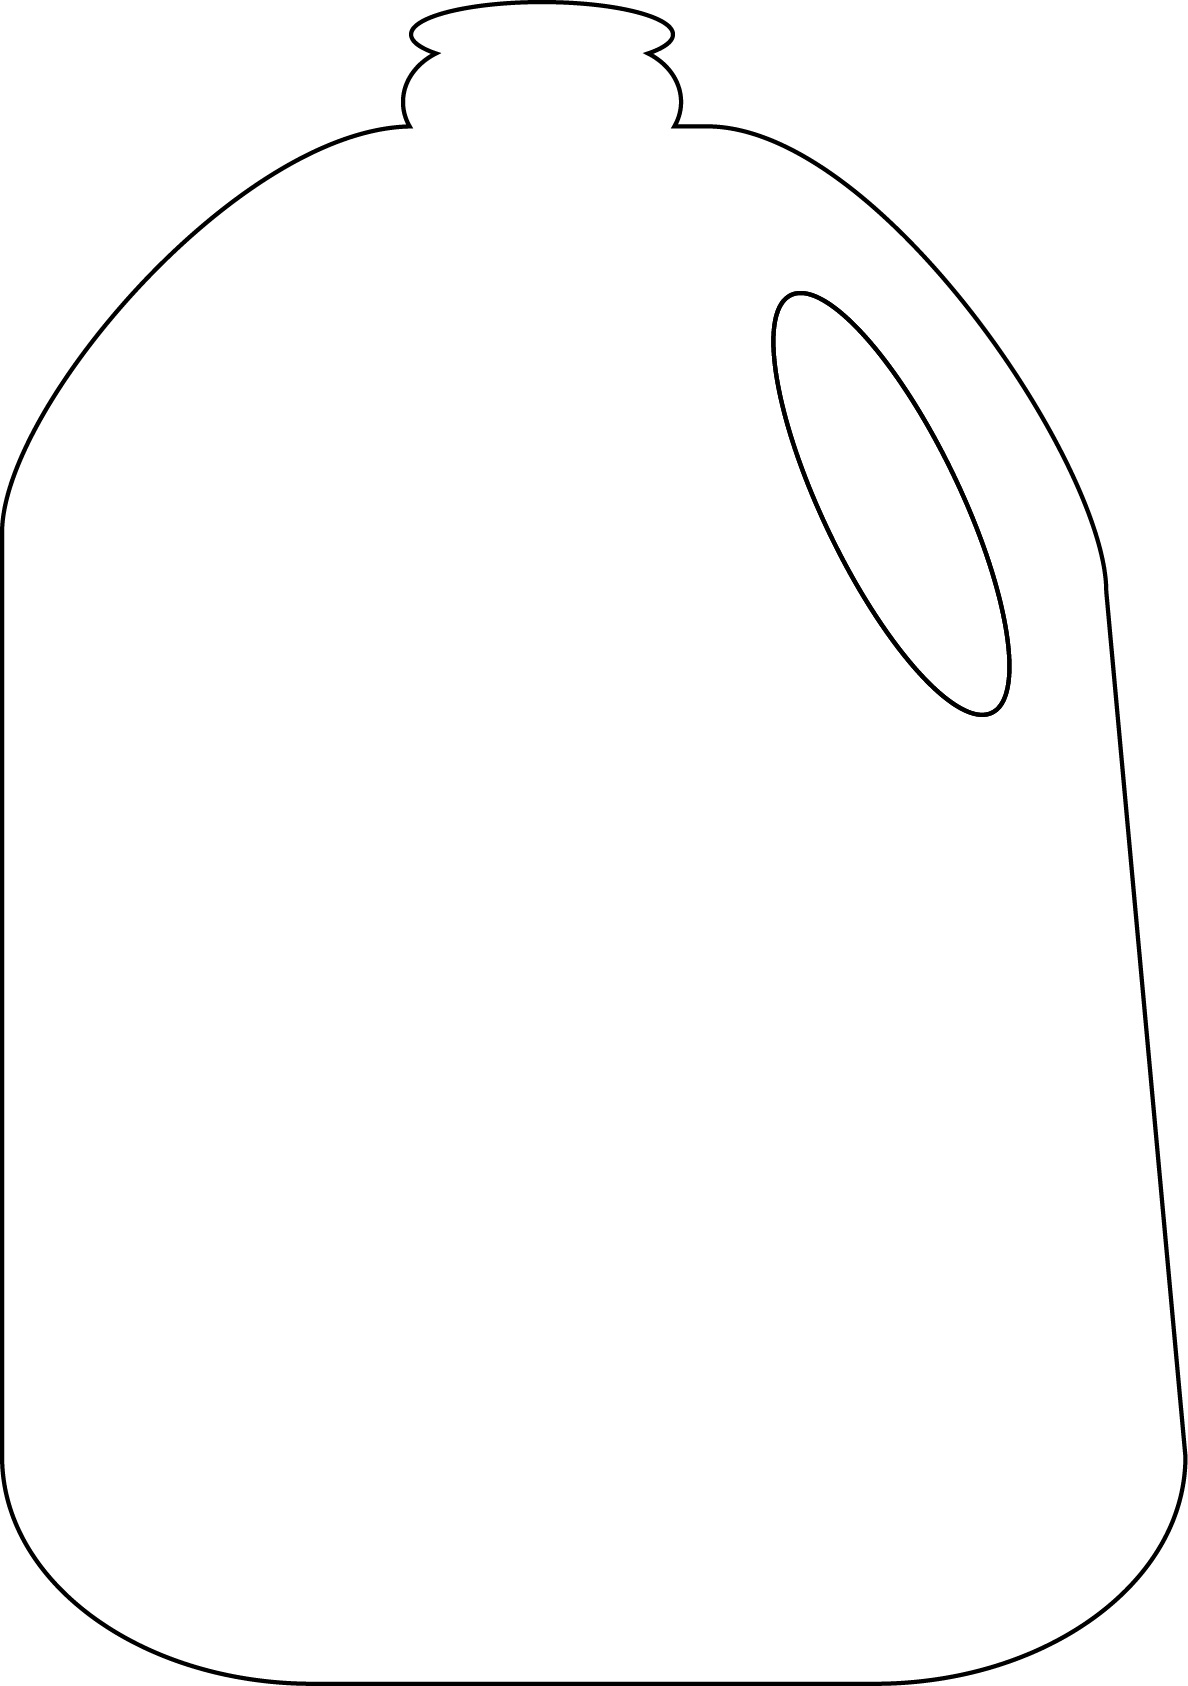 Free Cliparts Gallon Jug, Download Free Clip Art, Free Clip.